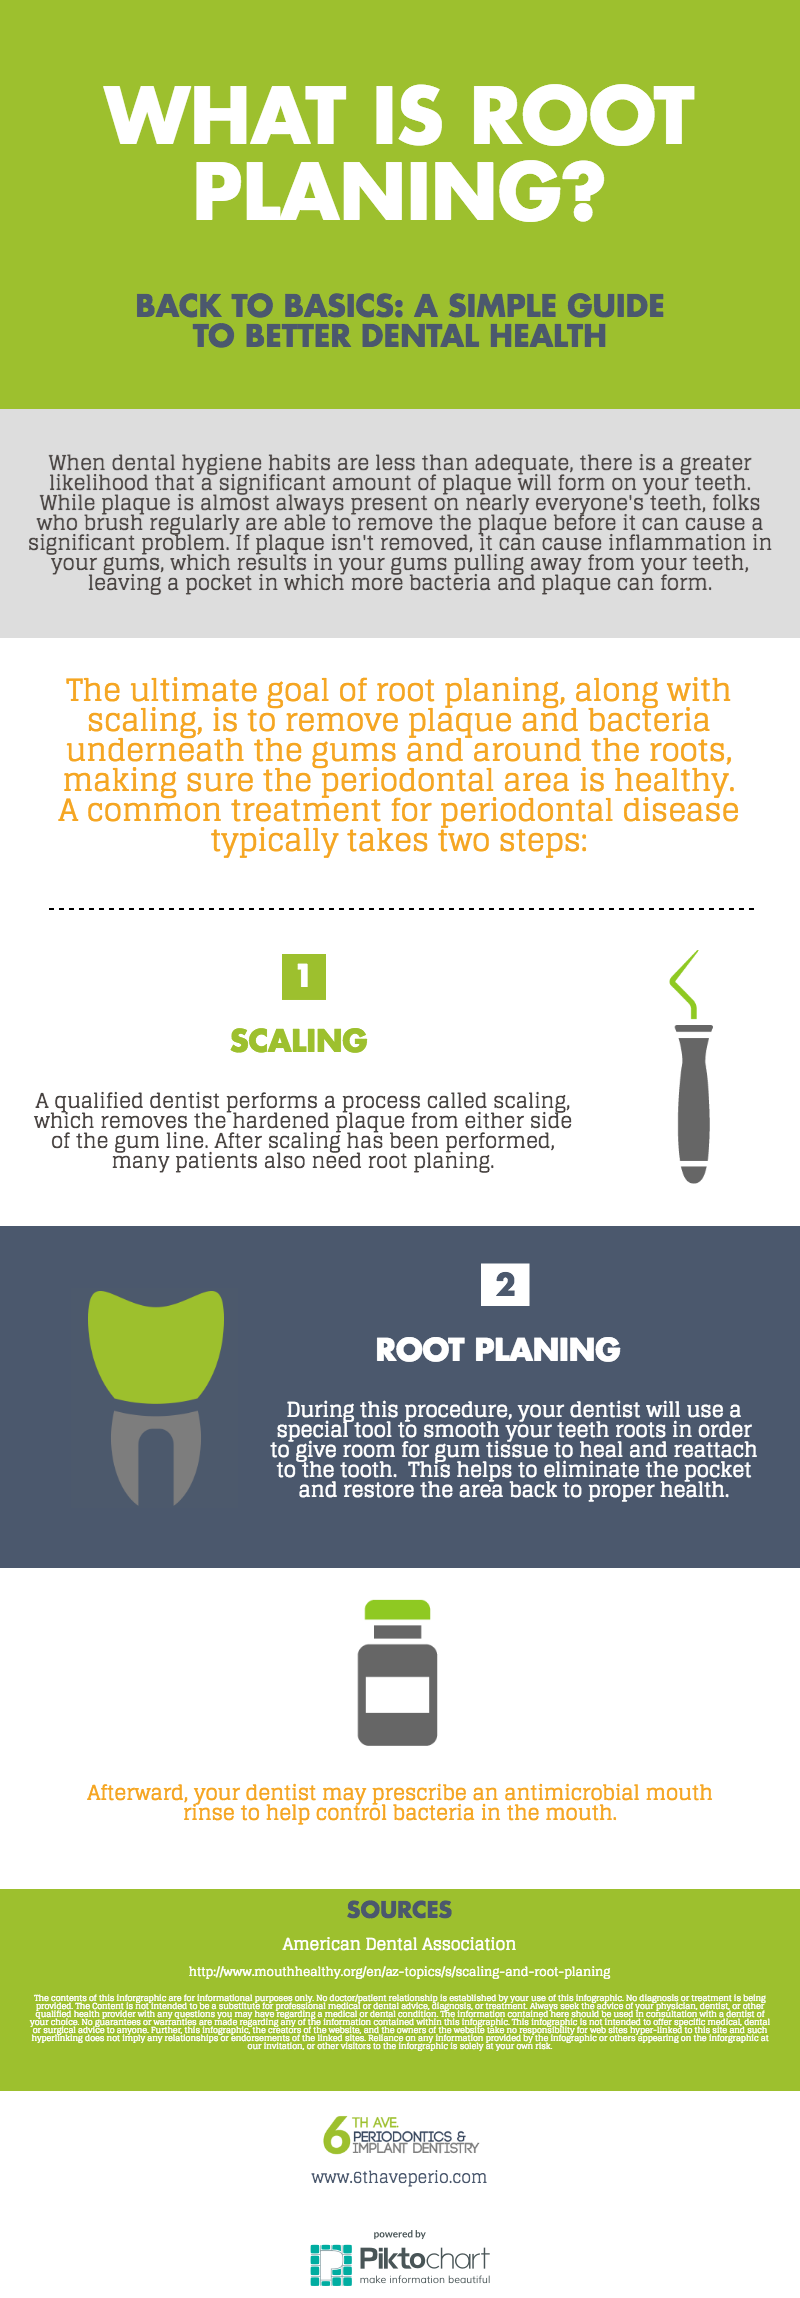 What is Root Planing? | 6th Ave Periodontics and Implant Dentistry